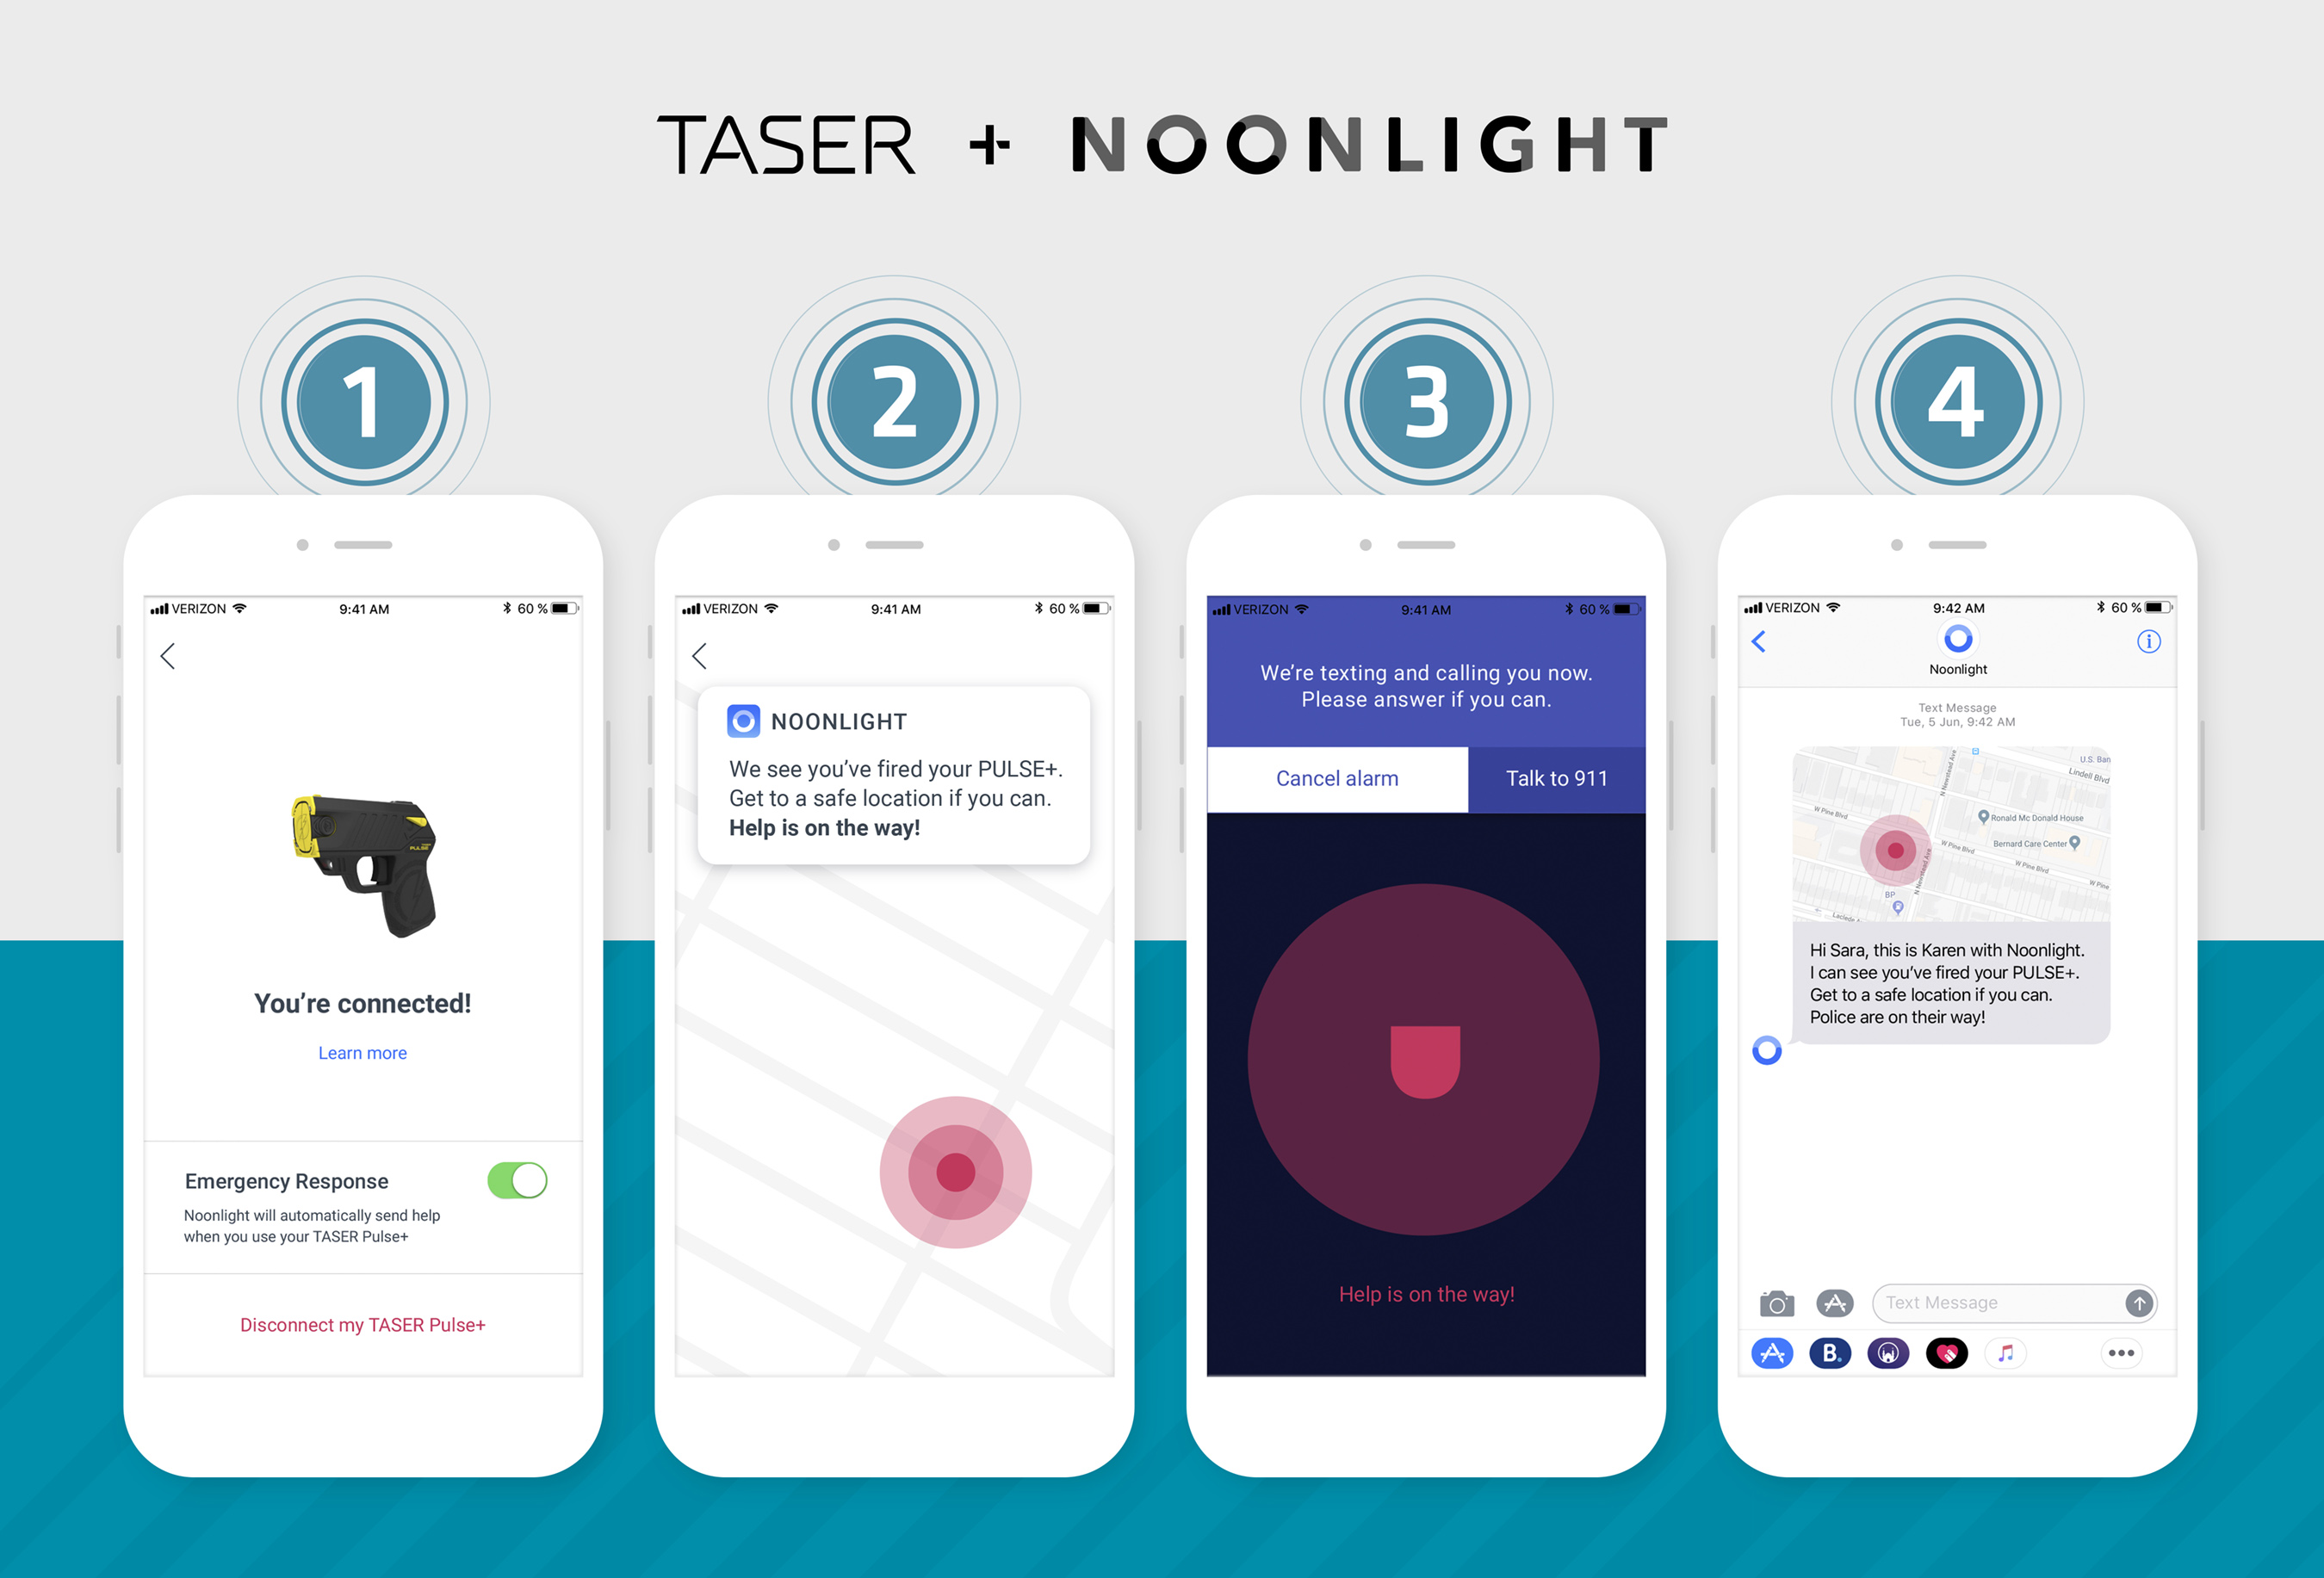 TASER Pulse+ uses the Noonlight app to send police to your location